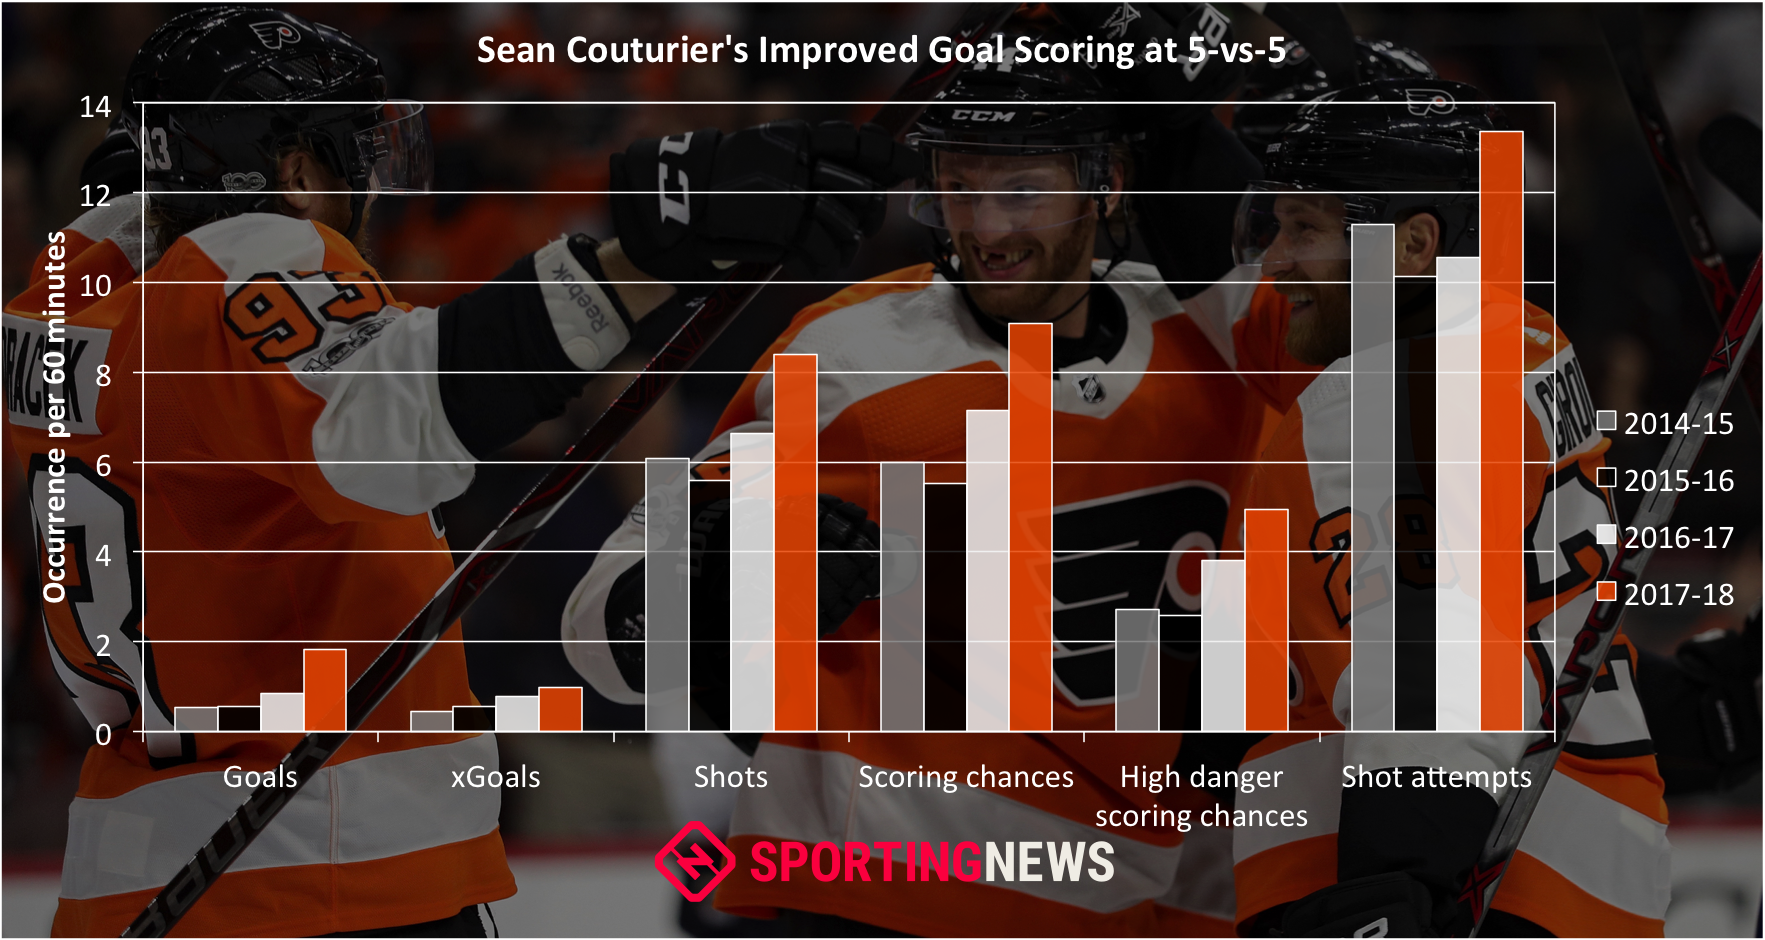 sean-couturier-graphic